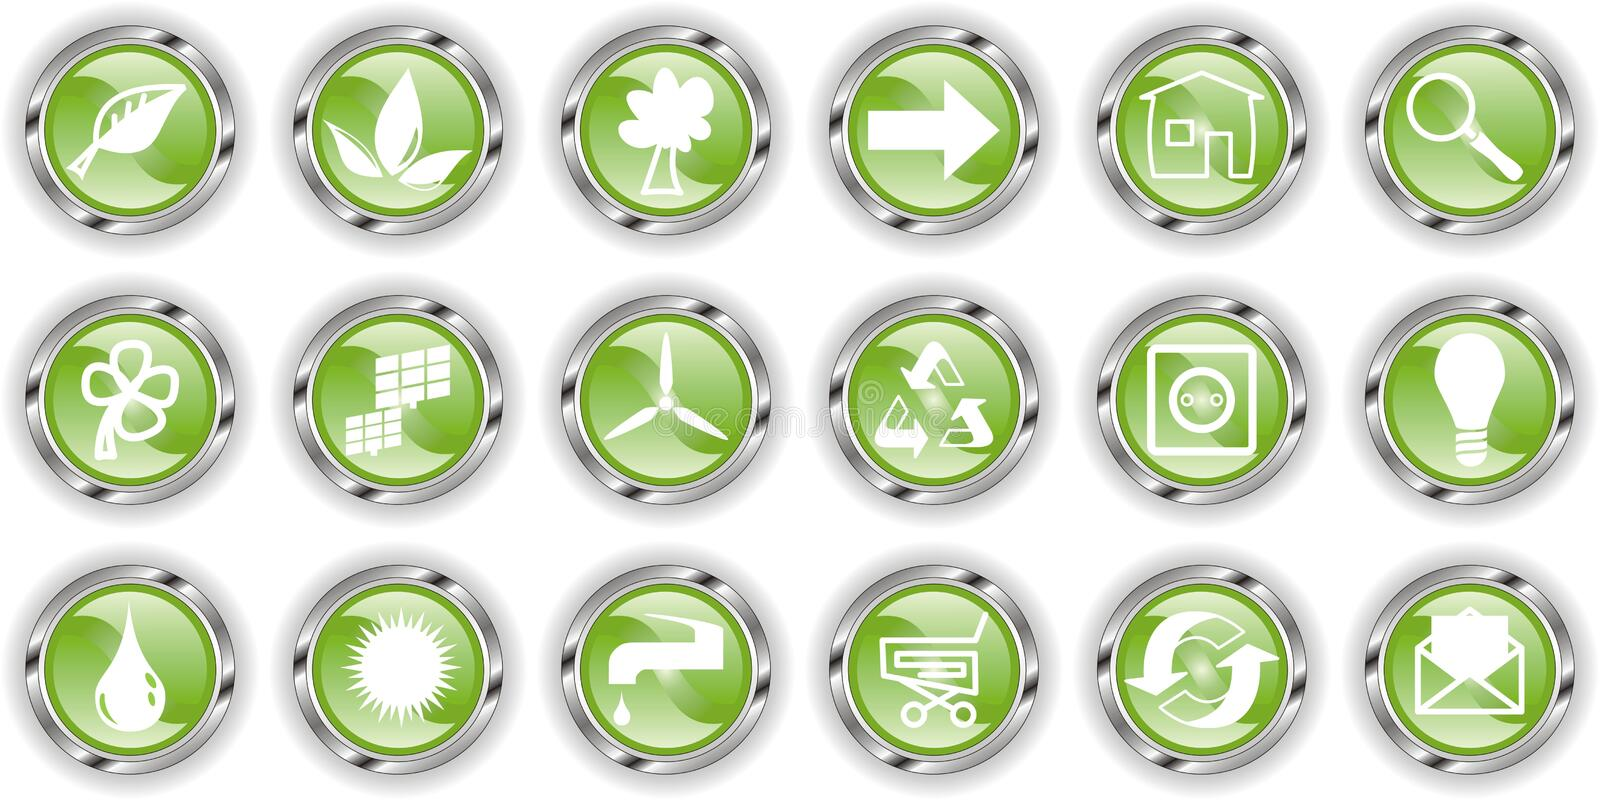 Green web button or icon royalty free illustration